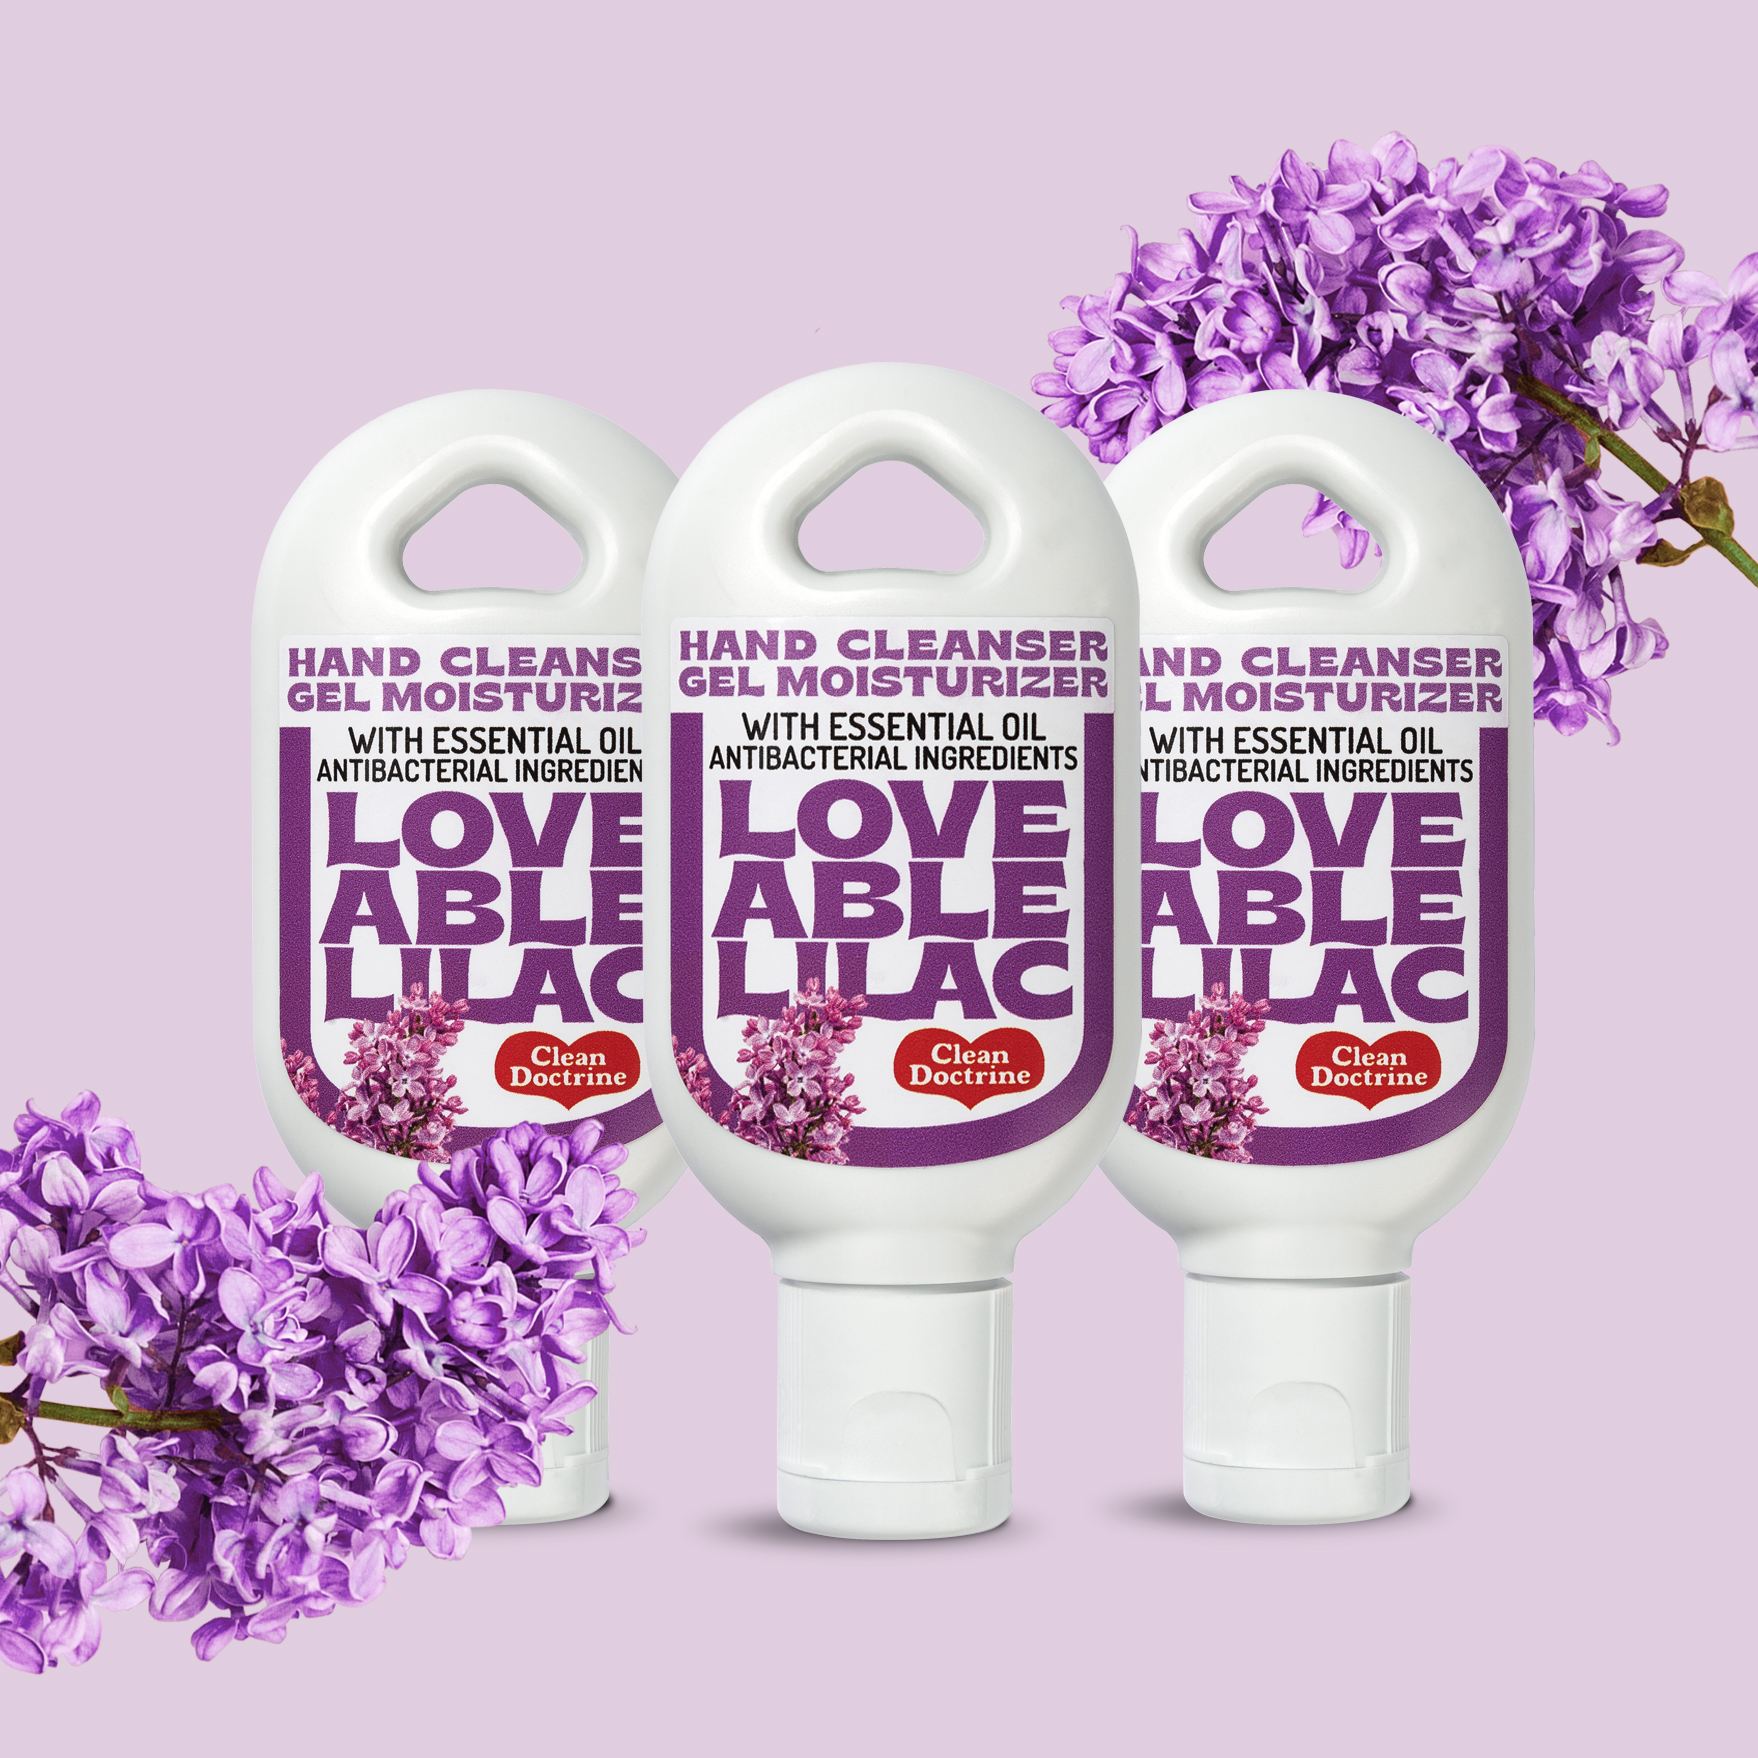 LOVABLE LILAC